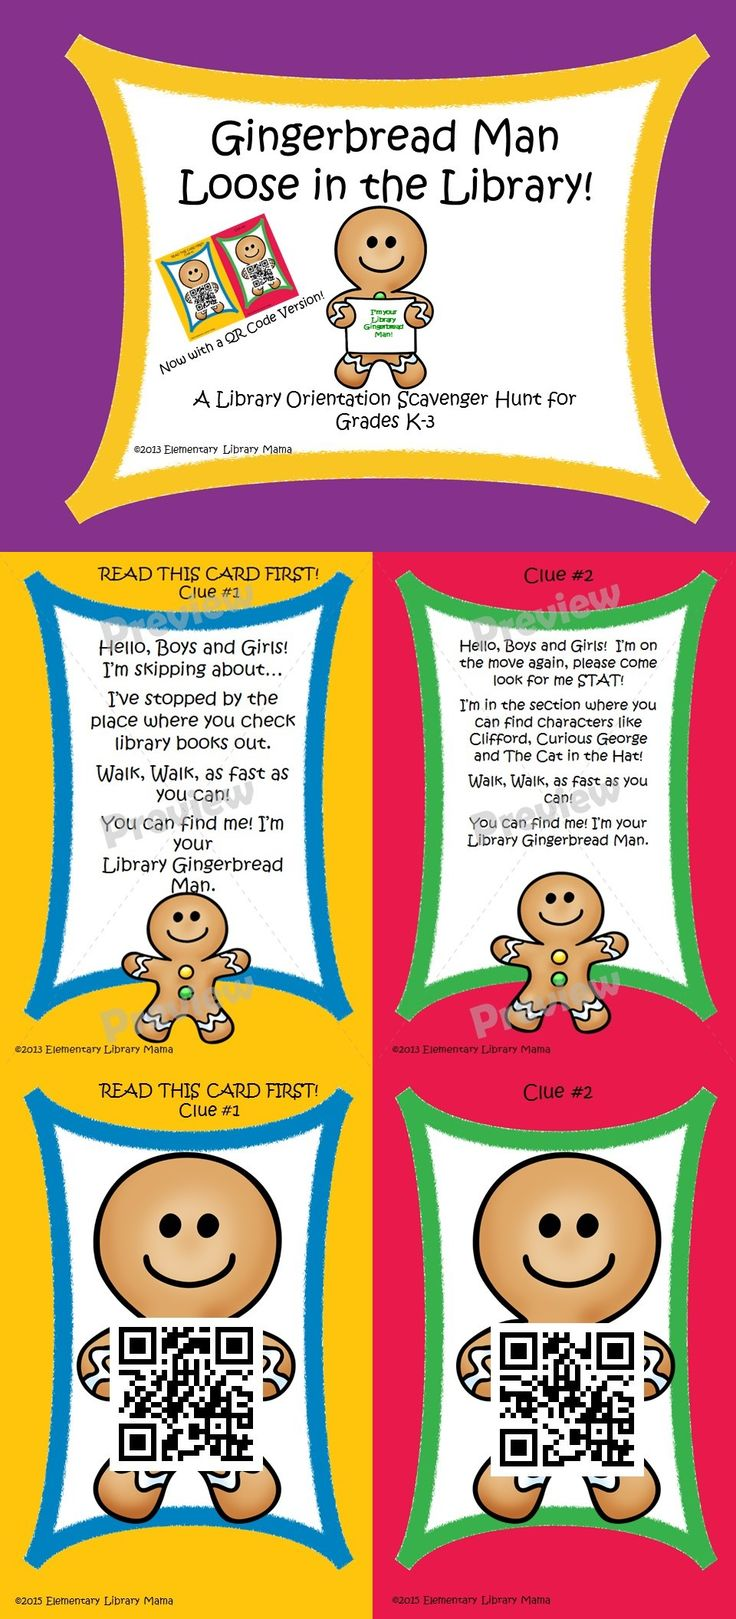 NEW QR CODE VERSION ADDED!  This is a fun back to school library orientation activity for your younger elementary students and is based on the fabulous book The Gingerbread Man Loose in the School by Laura Murray! This scavenger hunt aligns with the following Common Core Standards: Kindergarten: SL.K.1, SL.K.2, SL.K.6 First Grade: SL.1.1, SL.1.2, SL.1.3 Second Grade: SL.2.1, SL.2.2, SL.2.3 Third Grade: SL.3.1, SL.3.3, SL.3.6 $